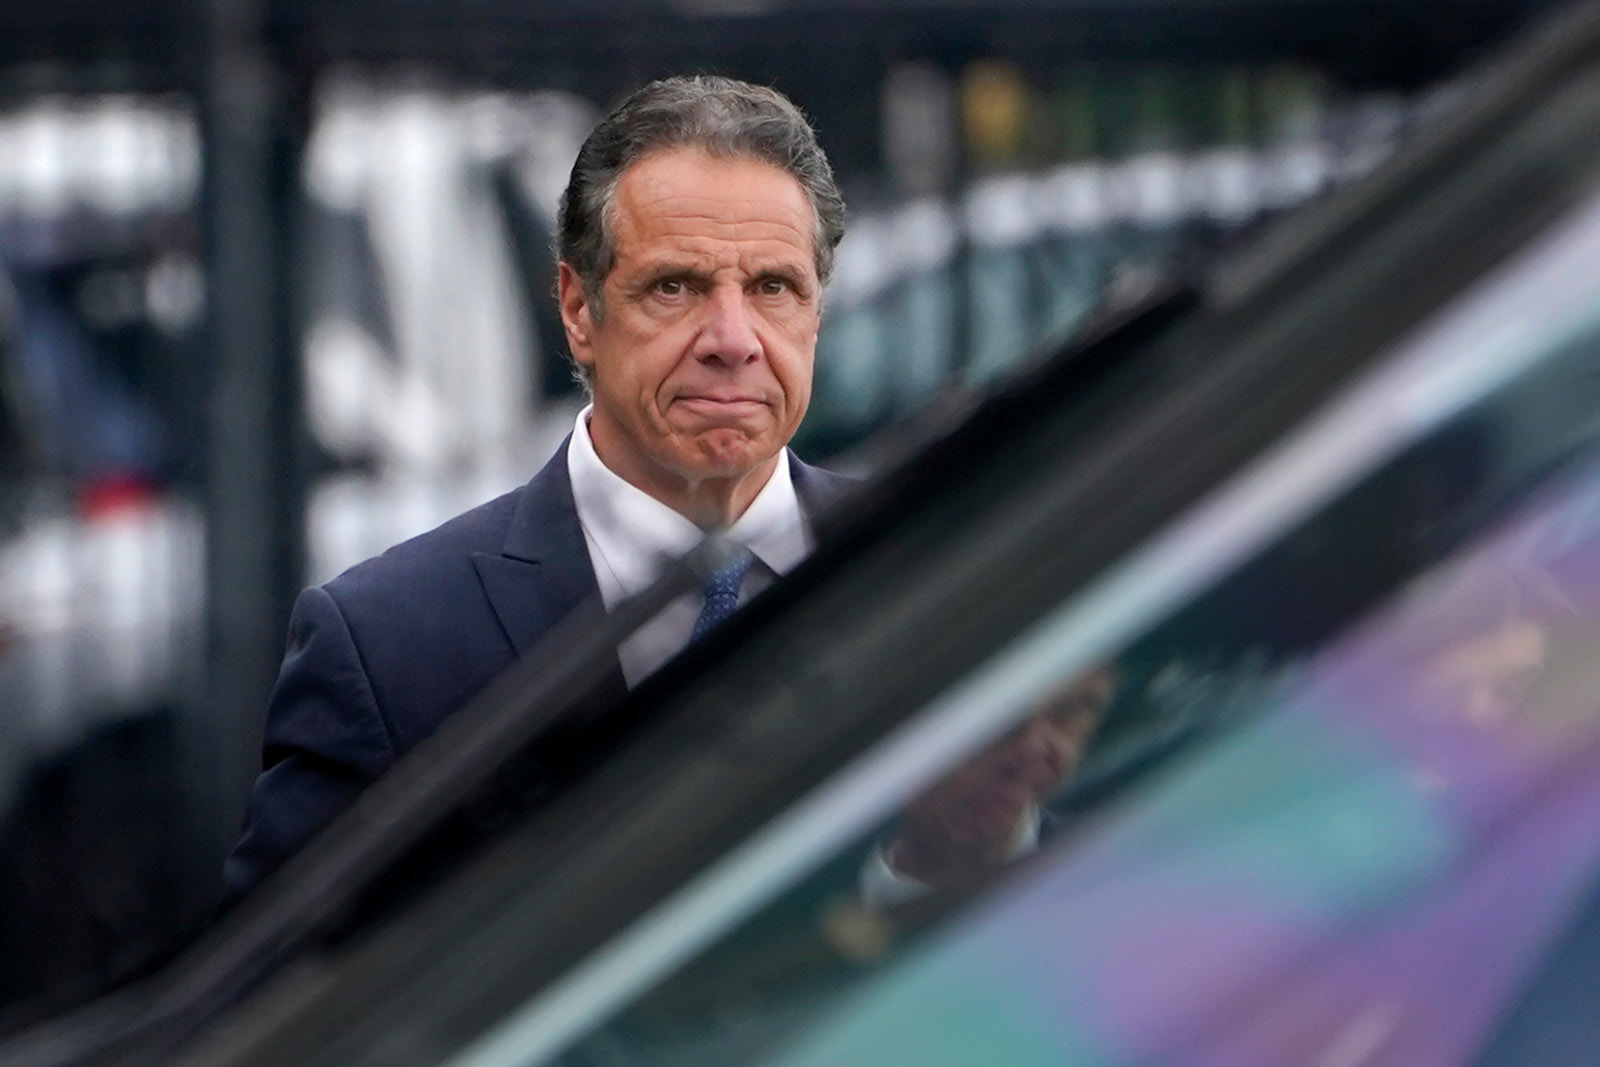 Governor Andrew Cuomo after announcing his resignation